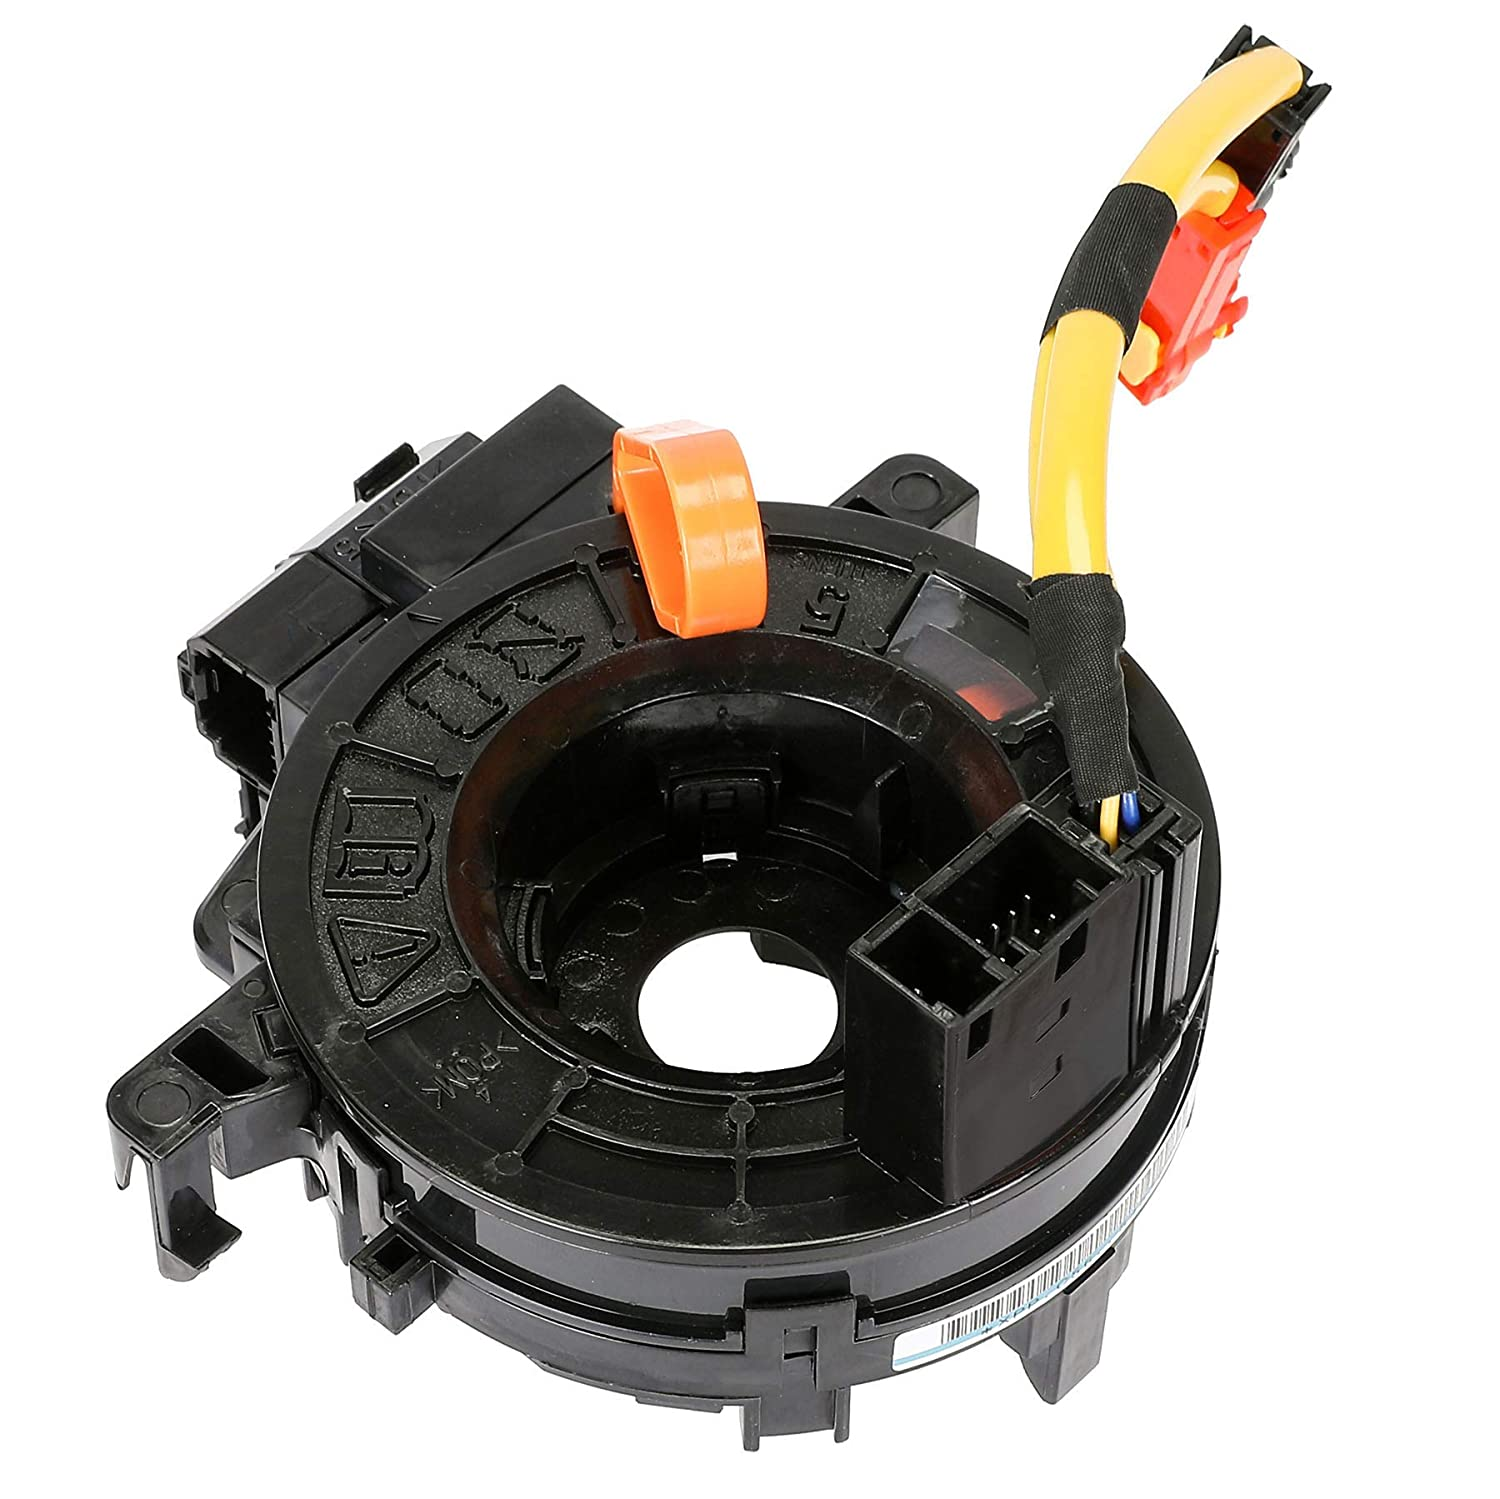 84306-0E010, 84306-06140 Steering Wheel Part, Fits Fits Toyota, Lexus and Scion Orion Motor Tech